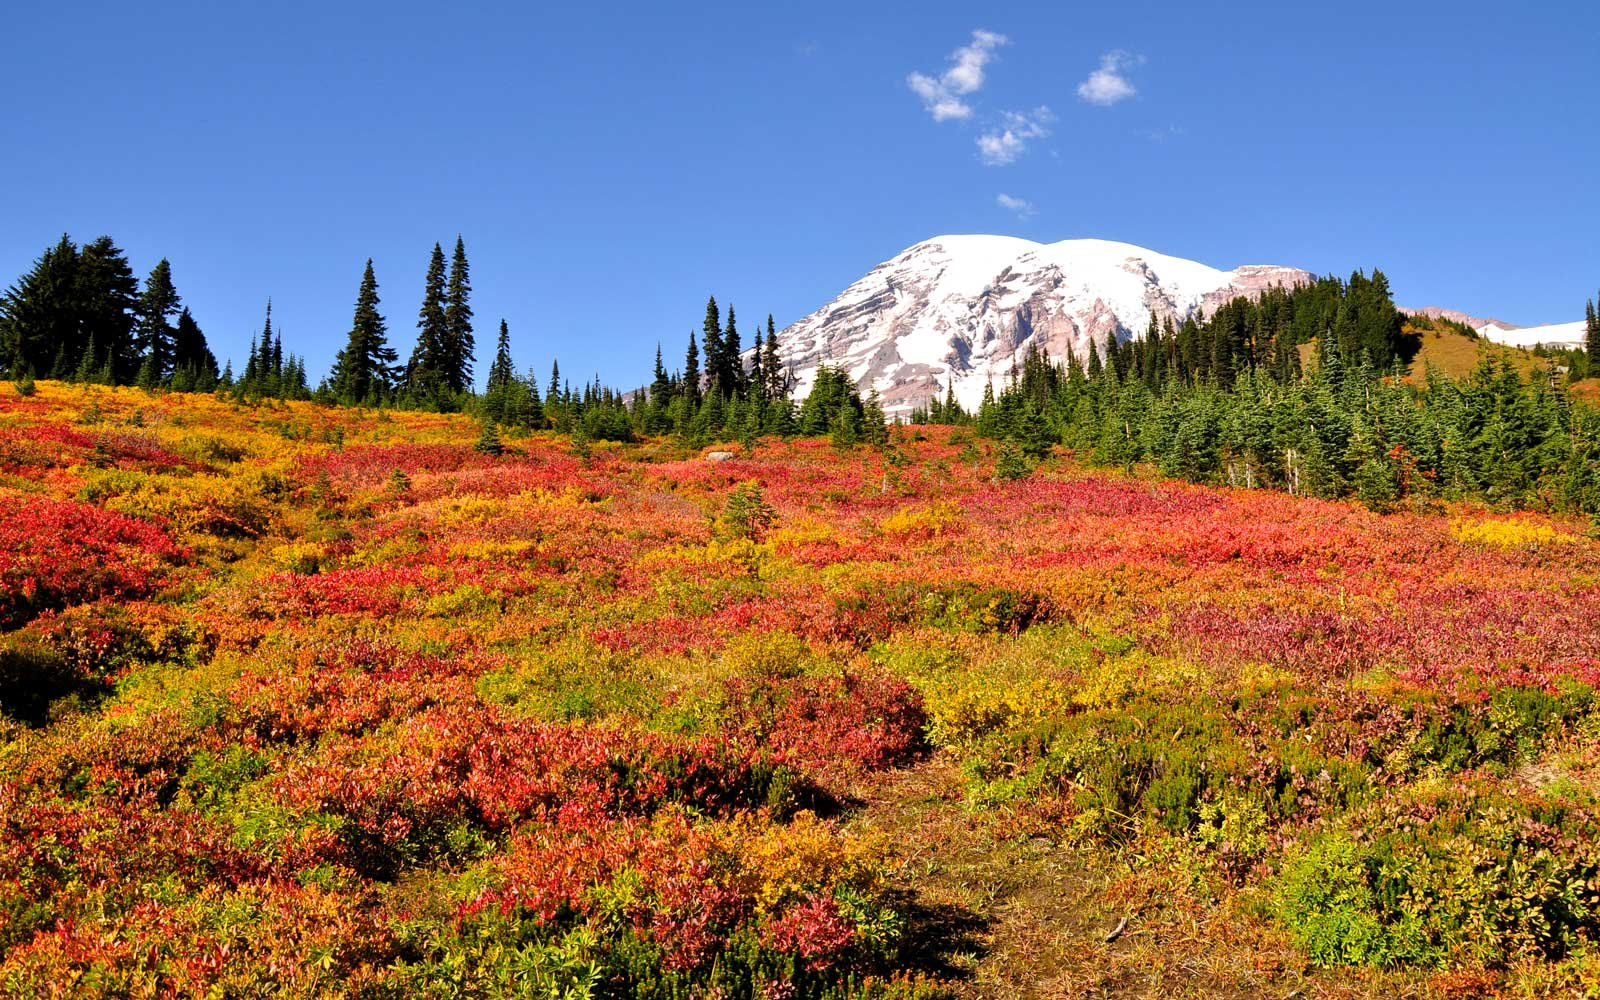 Mount Rainier National Park in fall